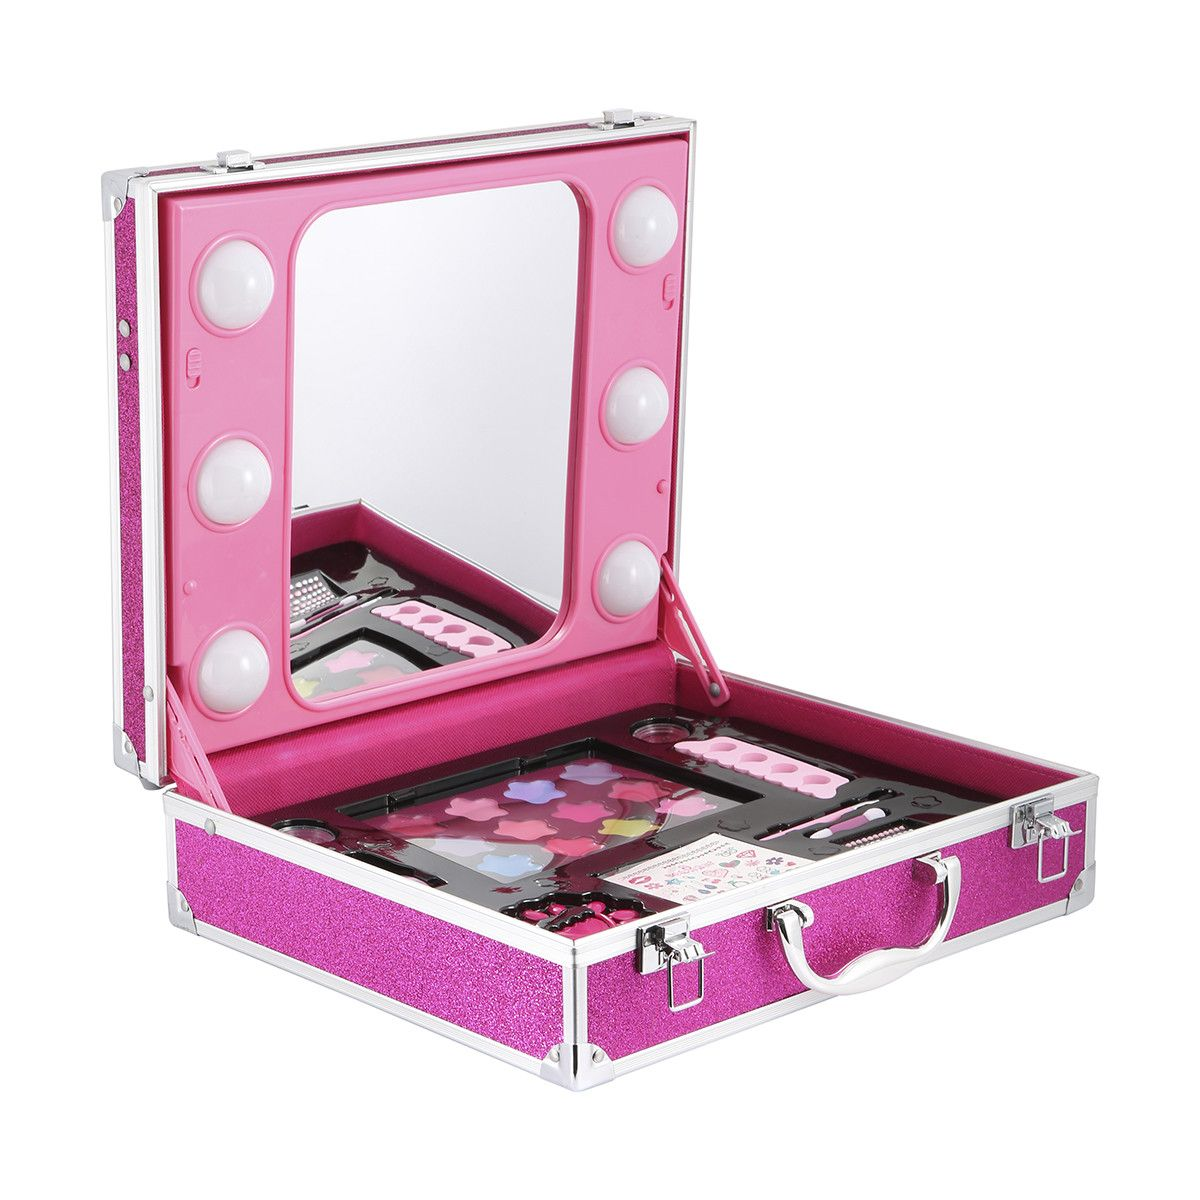 Light Up Cosmetic Case Kmart 40 J (With images